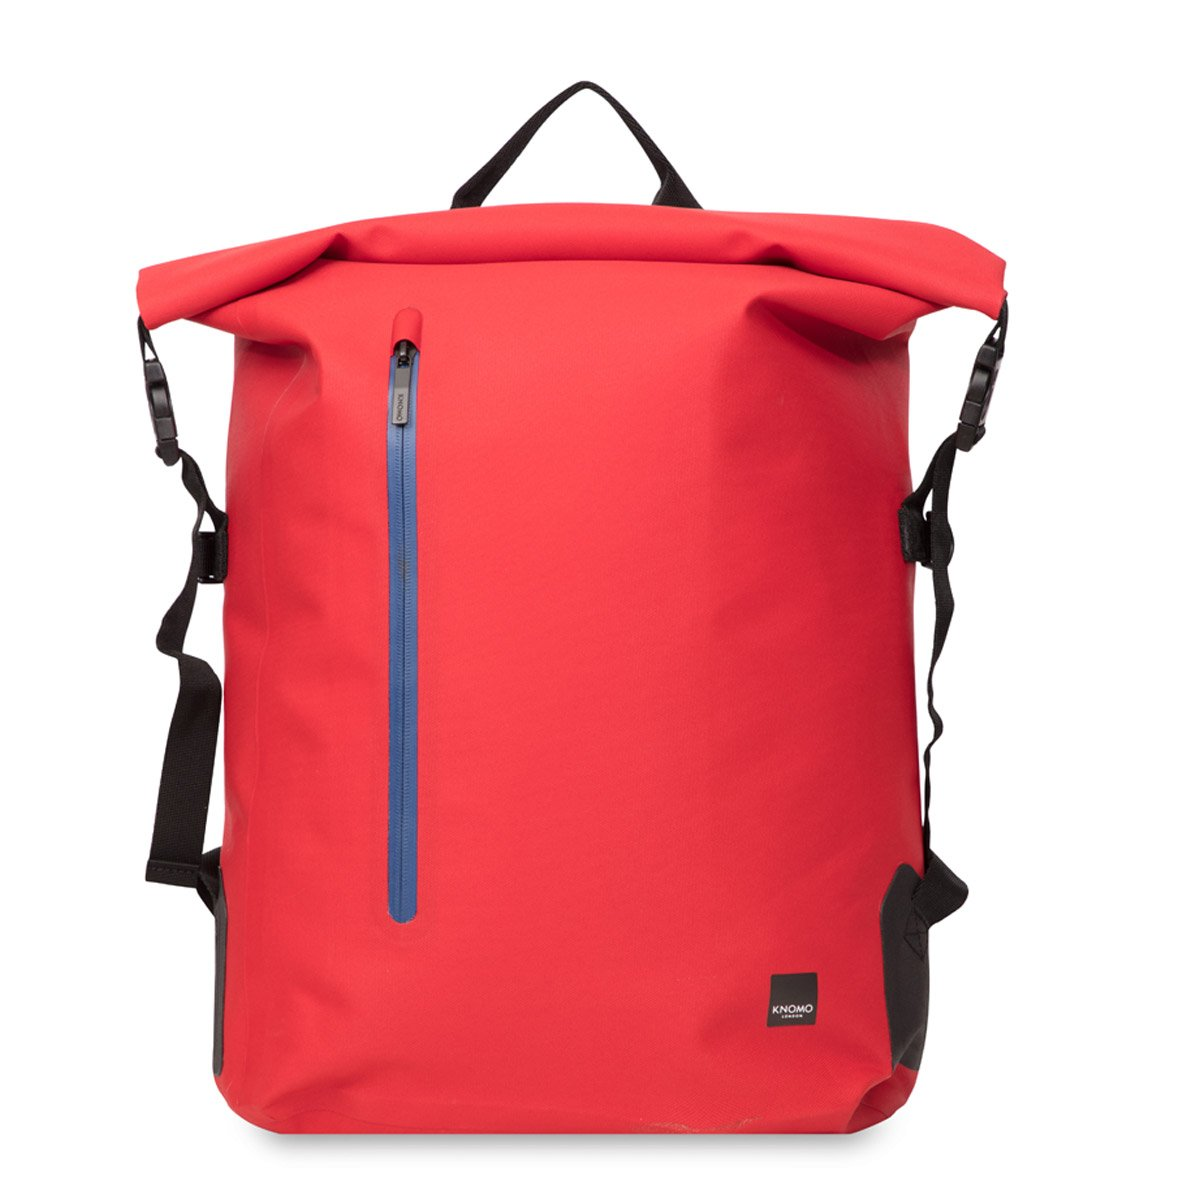 Cromwell front formula 1 red web